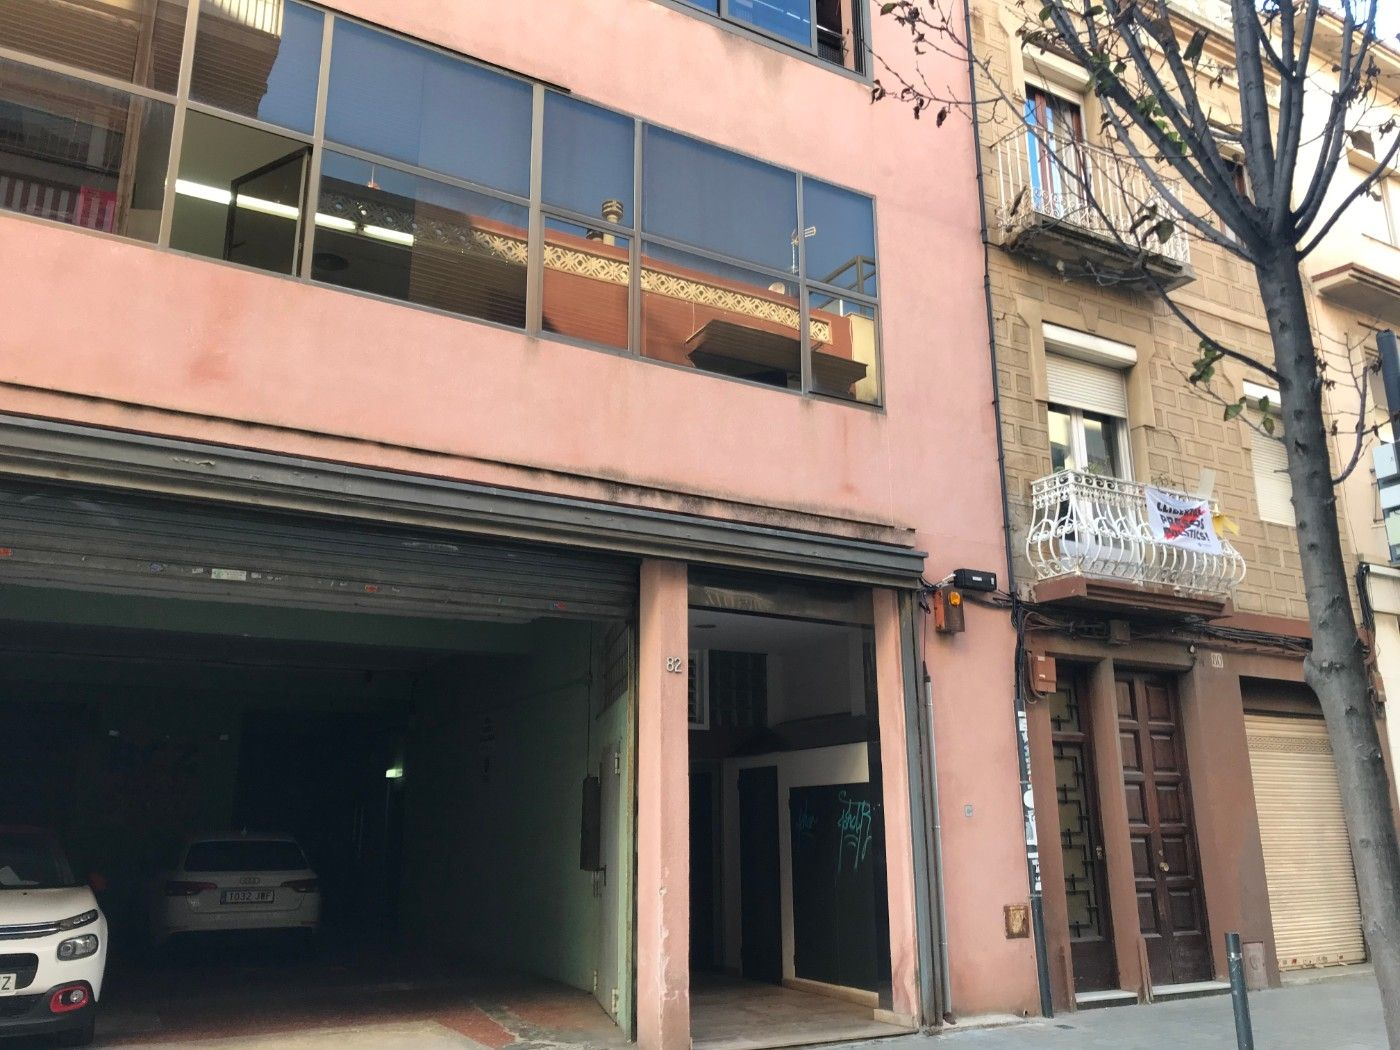 Office space in Carrer sant antoni, 82. Despatx en venda a mataró